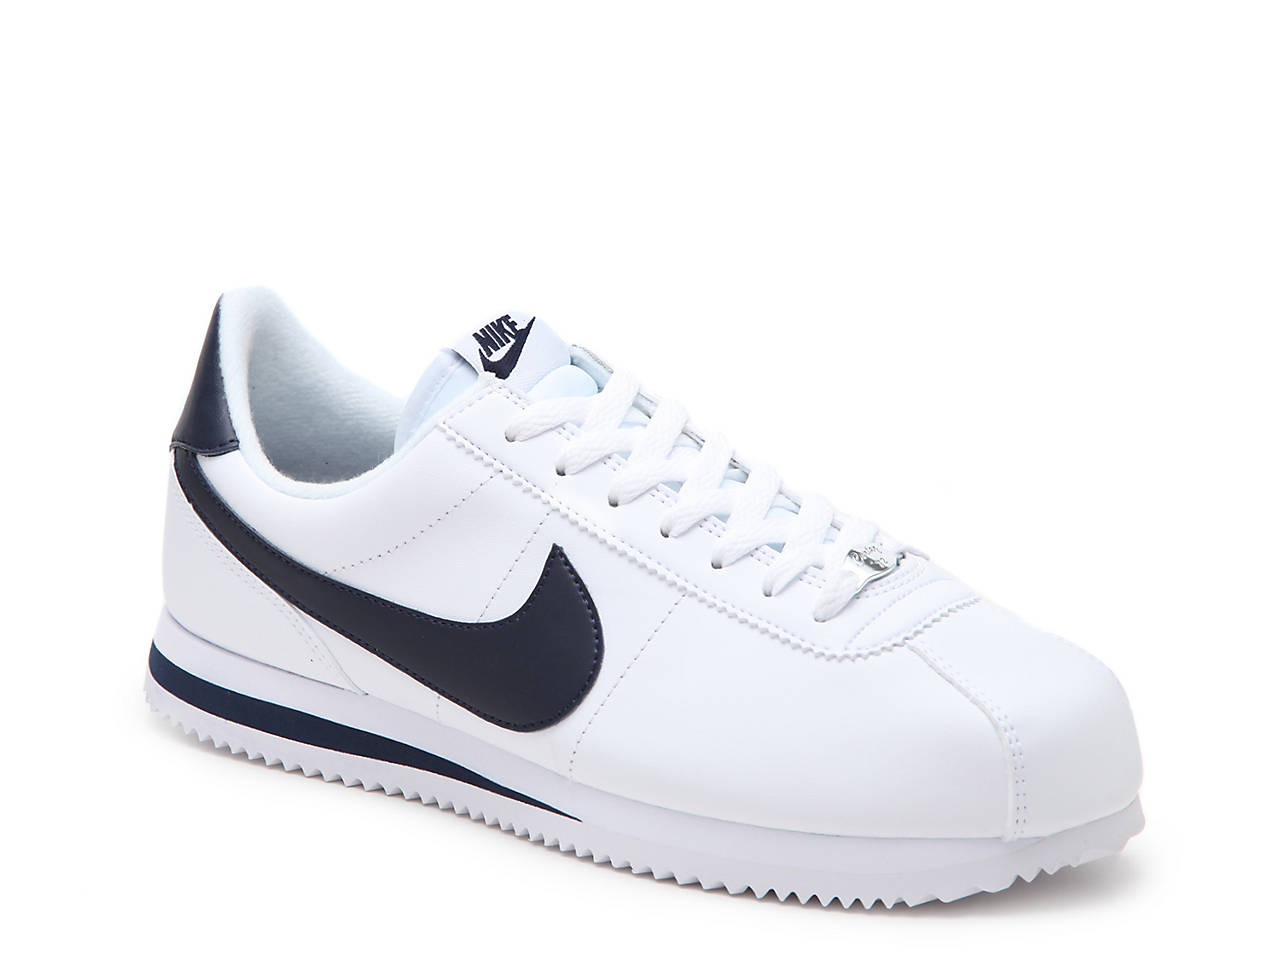 finest selection 12db4 c0c4c Nike Cortez Basic Sneaker - Mens Mens Shoes  DSW